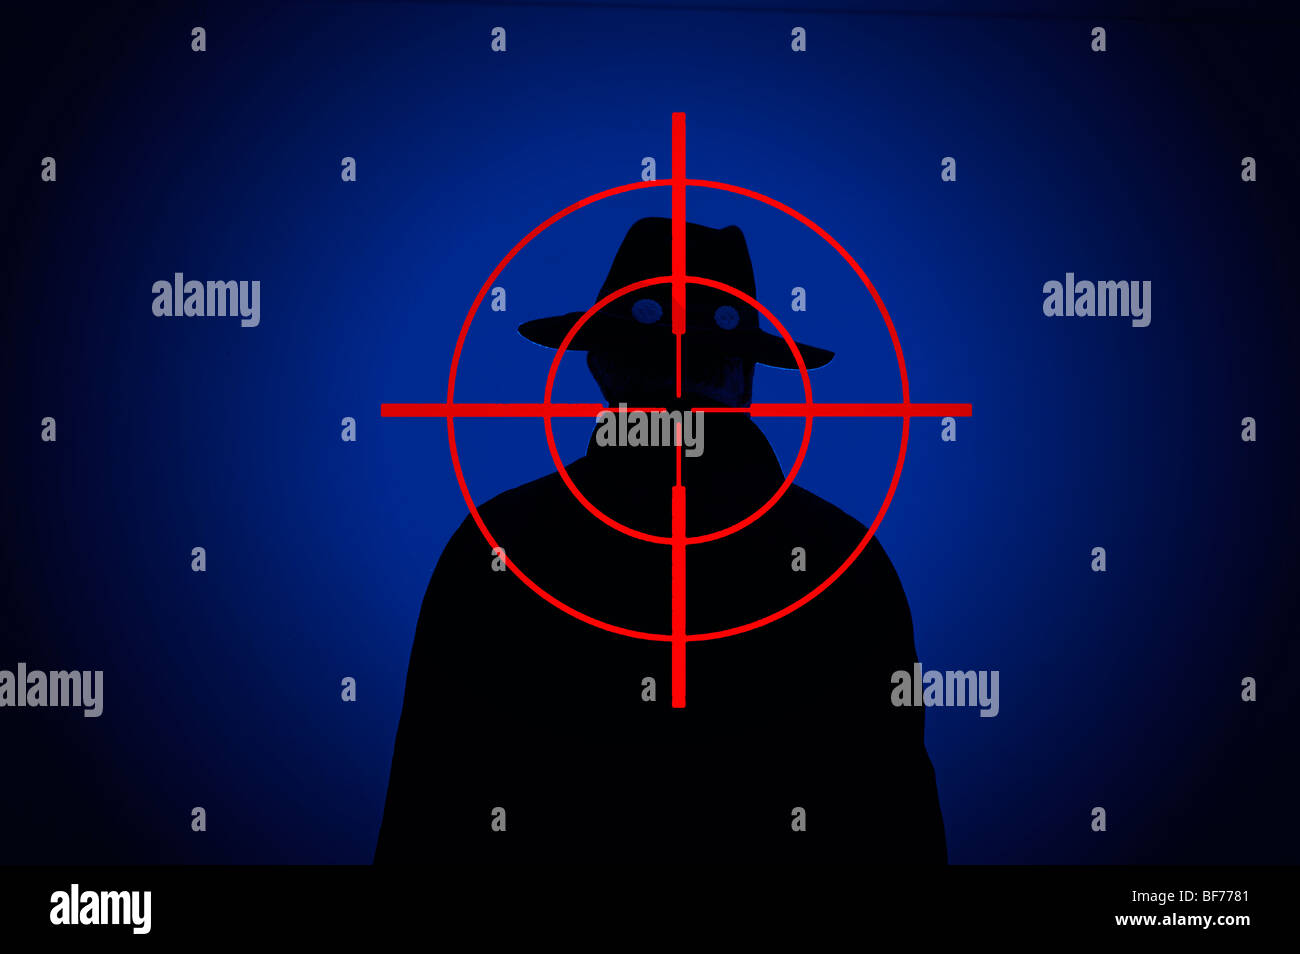 silhouetted man with rifle gun site cross hairs superimposed - Stock Image